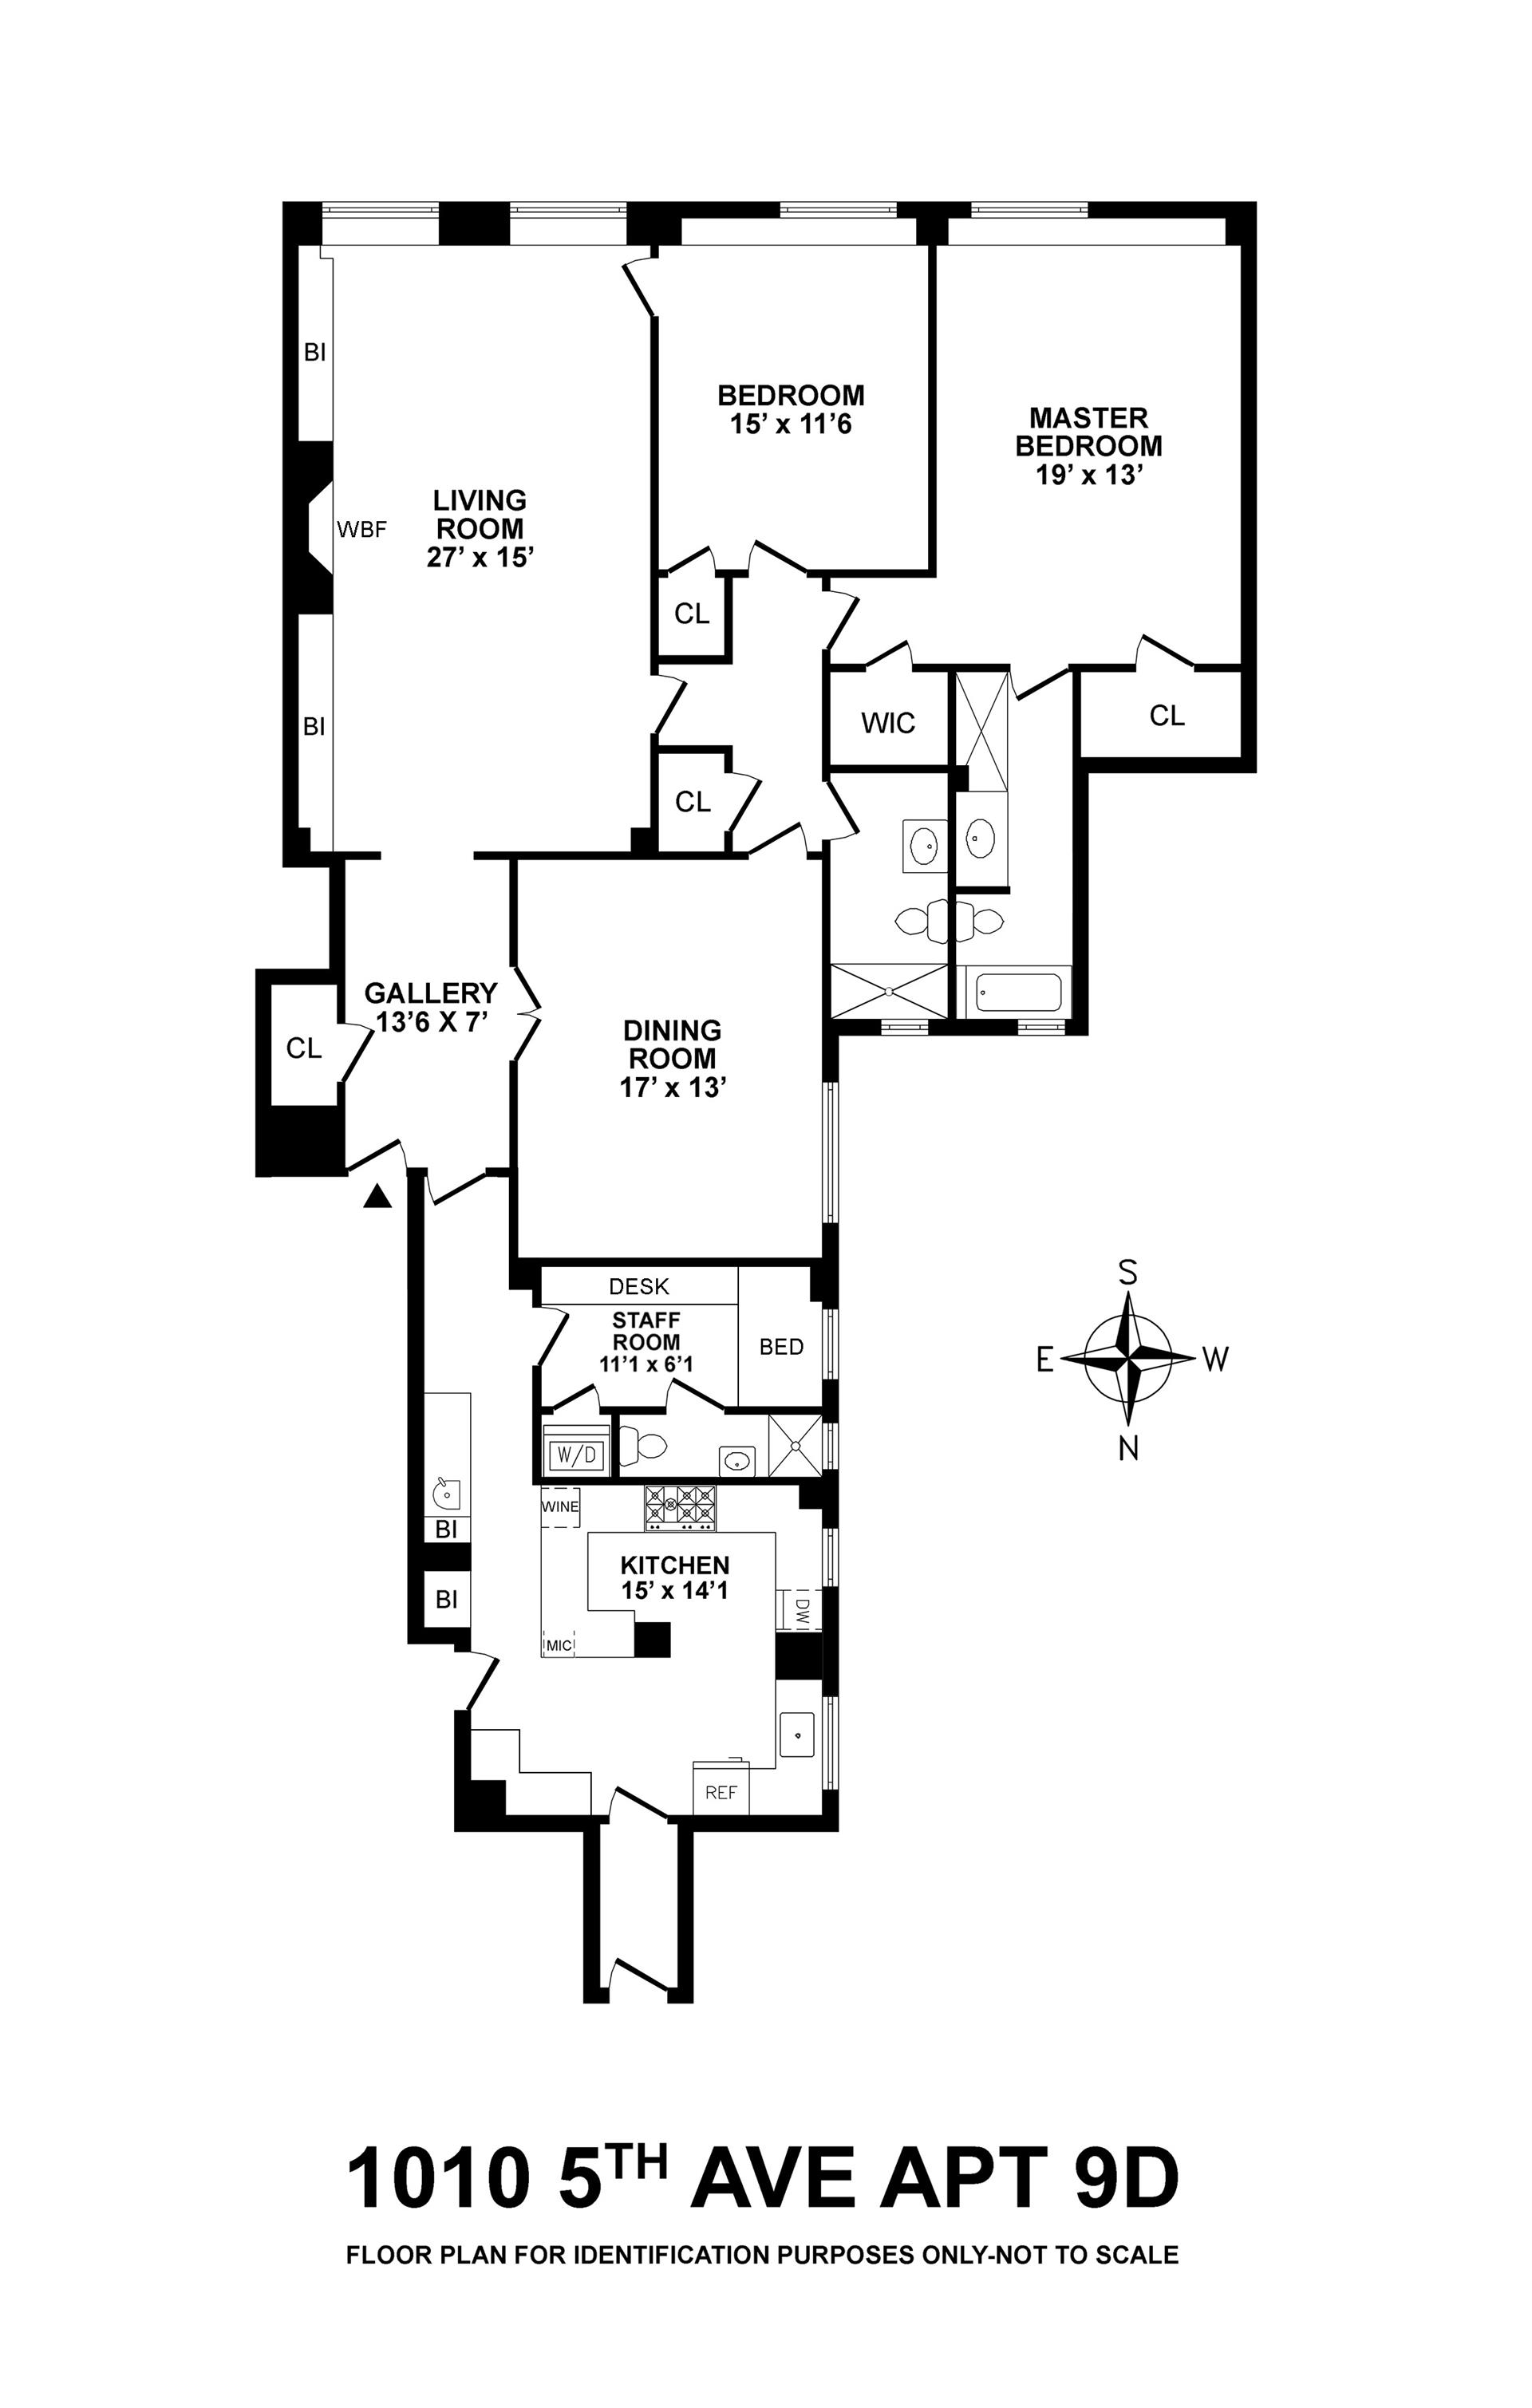 Floor plan of 1010 TENANTS CORP, 1010 Fifth Avenue, 9D - Upper East Side, New York